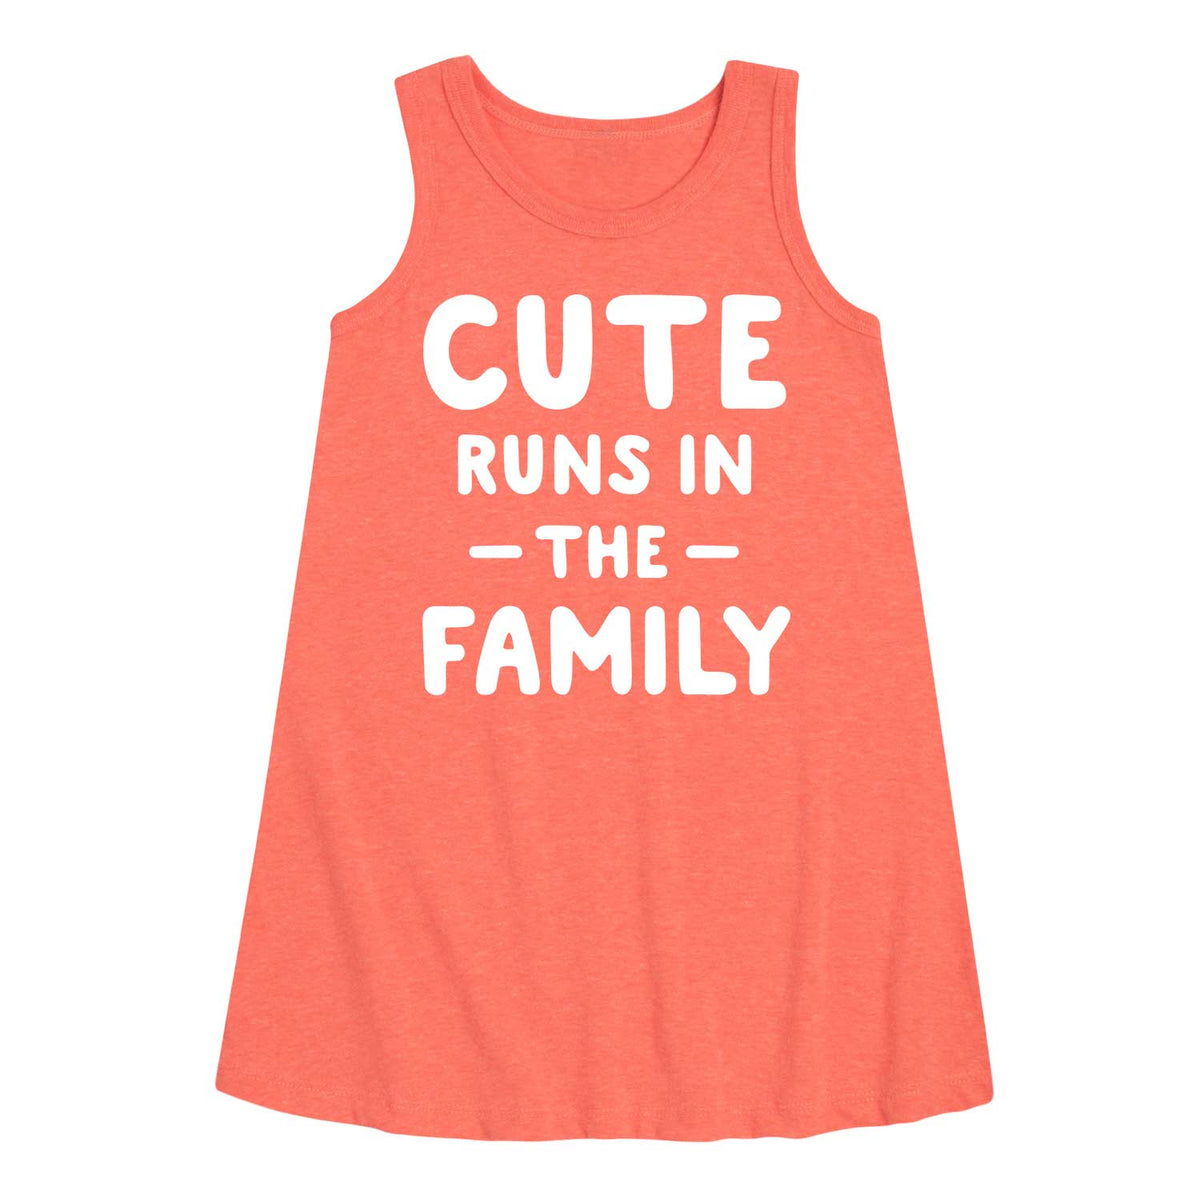 Cute Runs In The Family - Youth & Toddler A-Line Dress